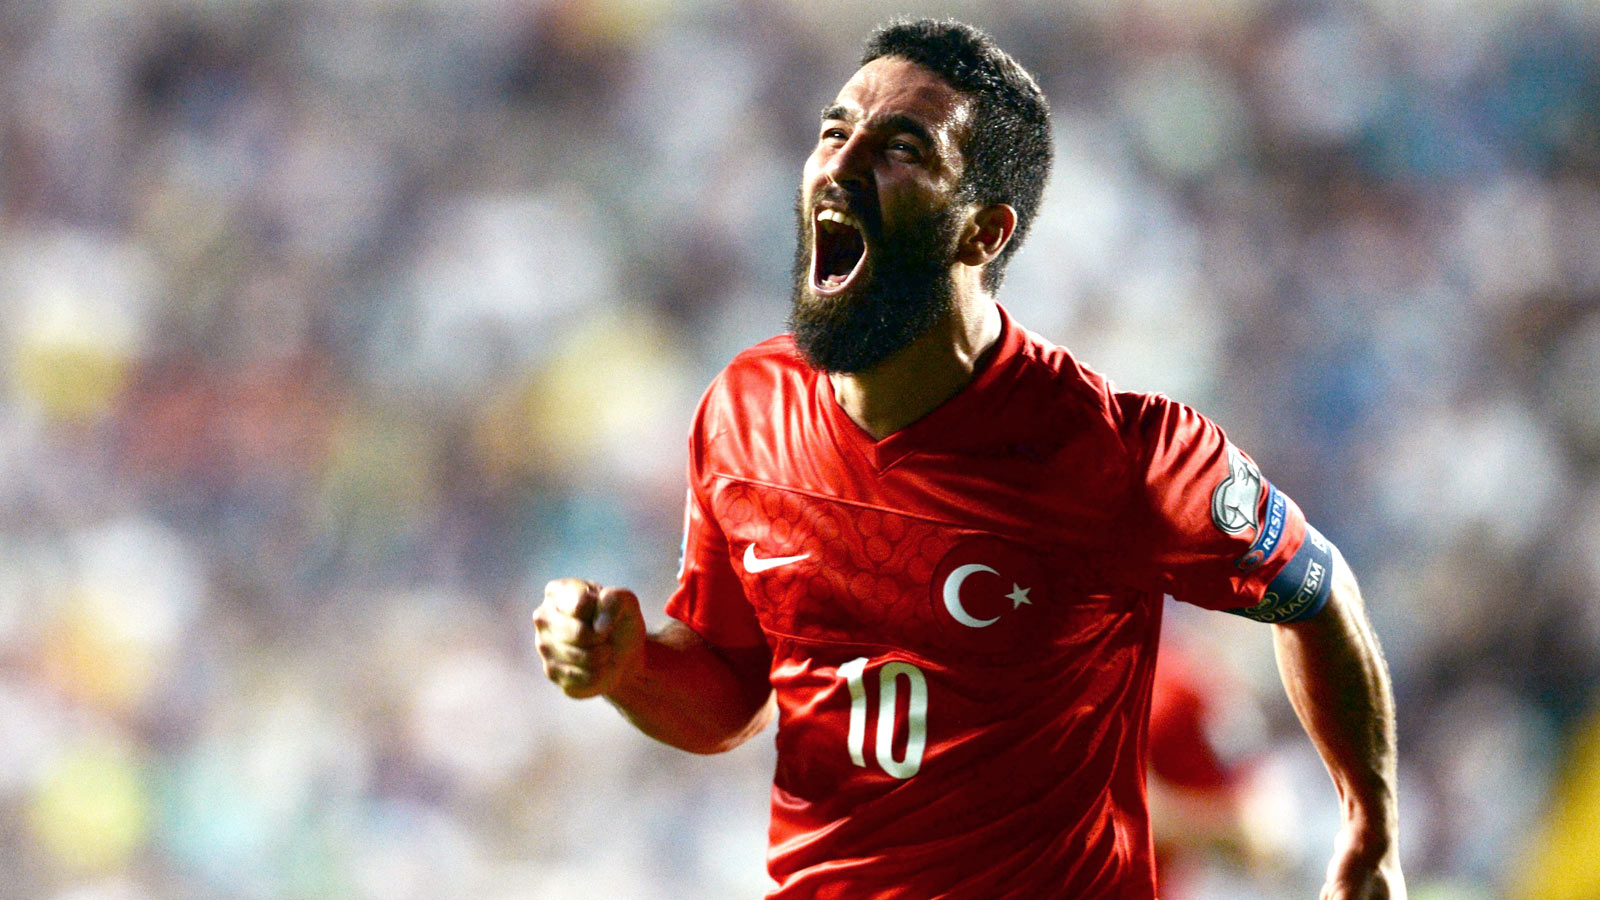 New signing Arda Turan happy to stick with Barcelona